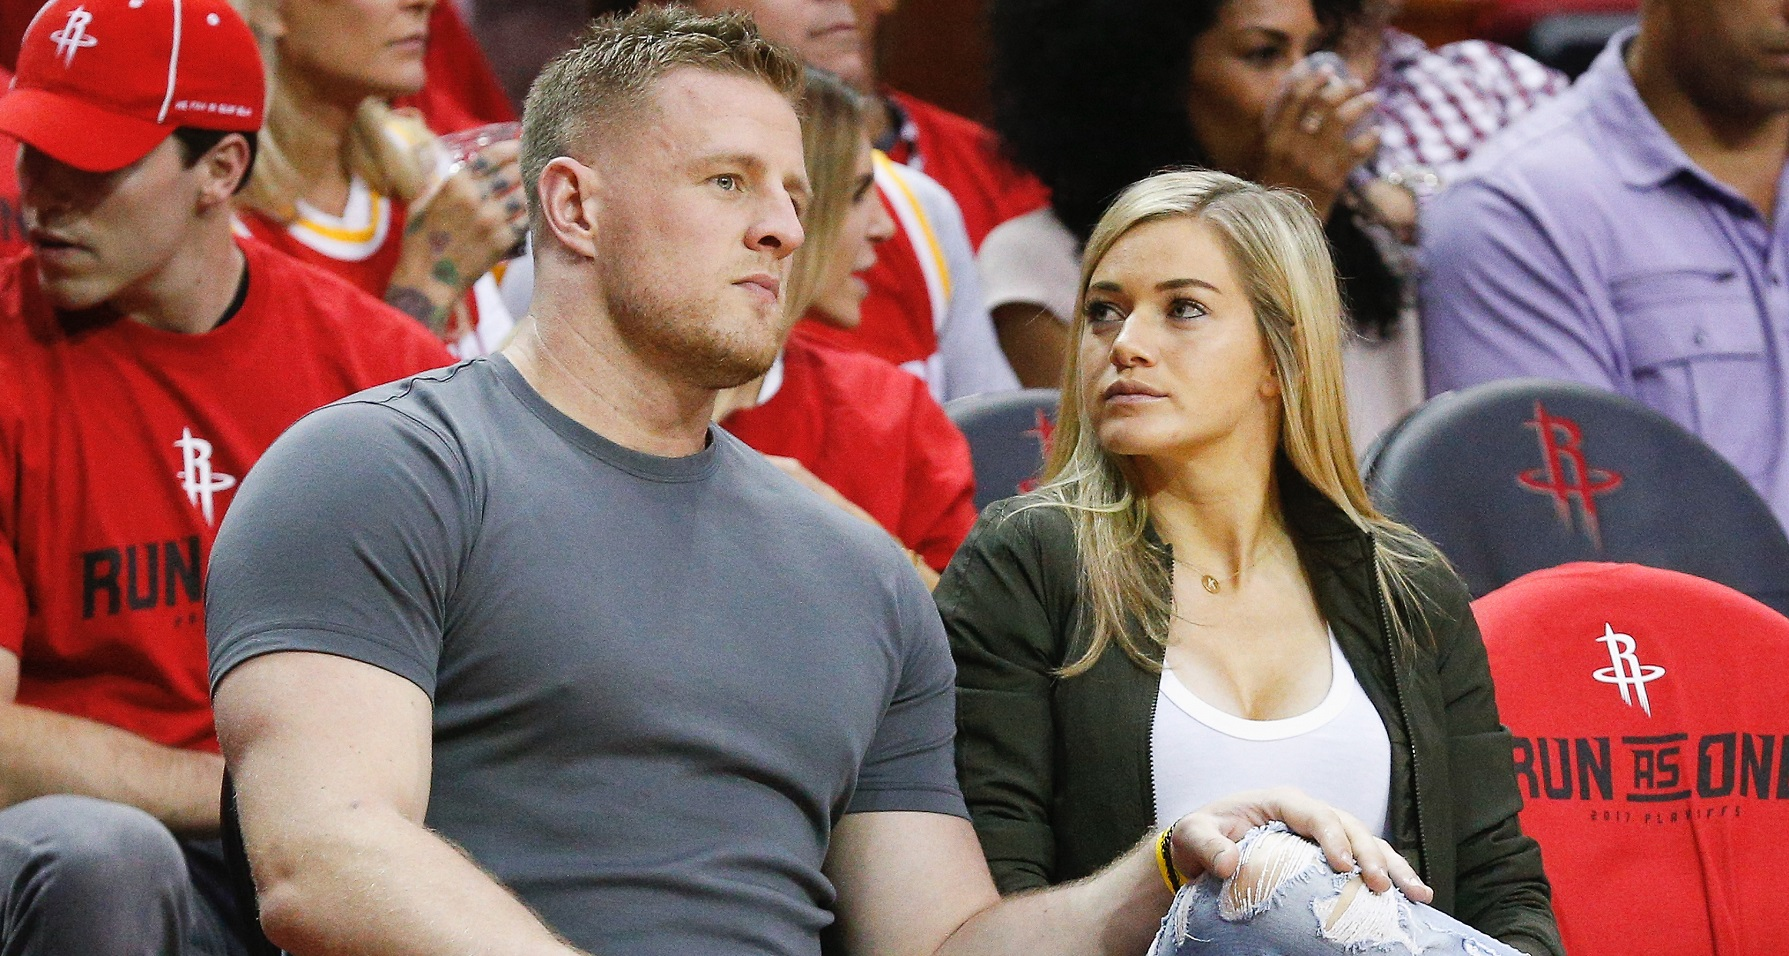 J.J. Watt and wife Kealia Ohai